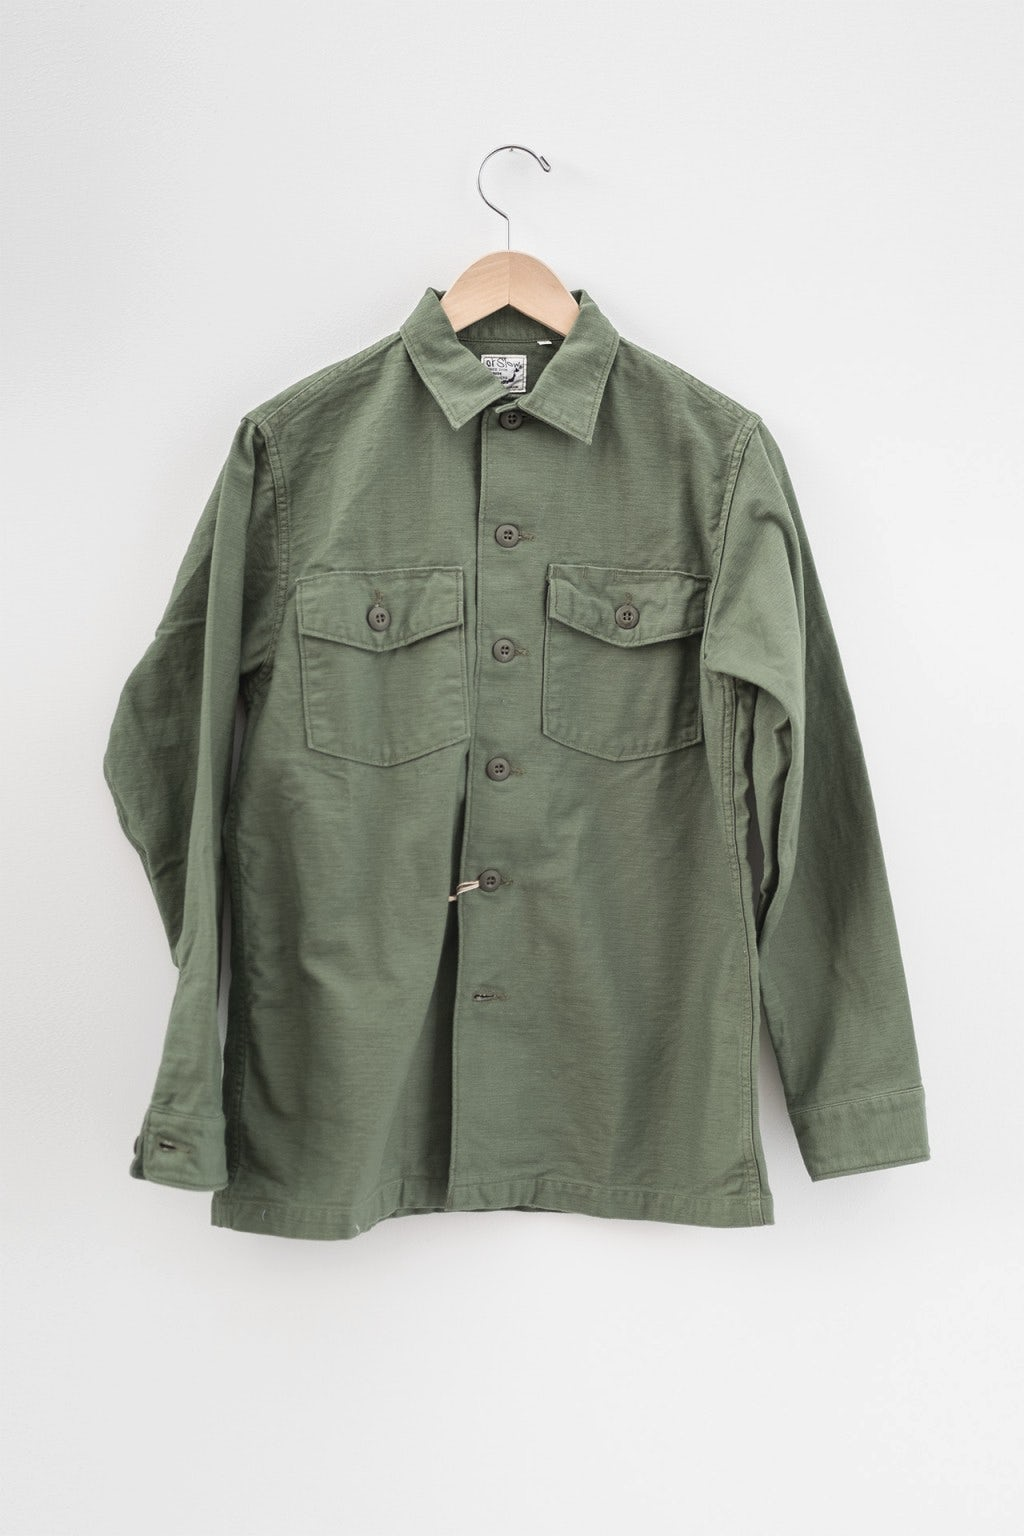 Orslow US Army Shirt 16 Green